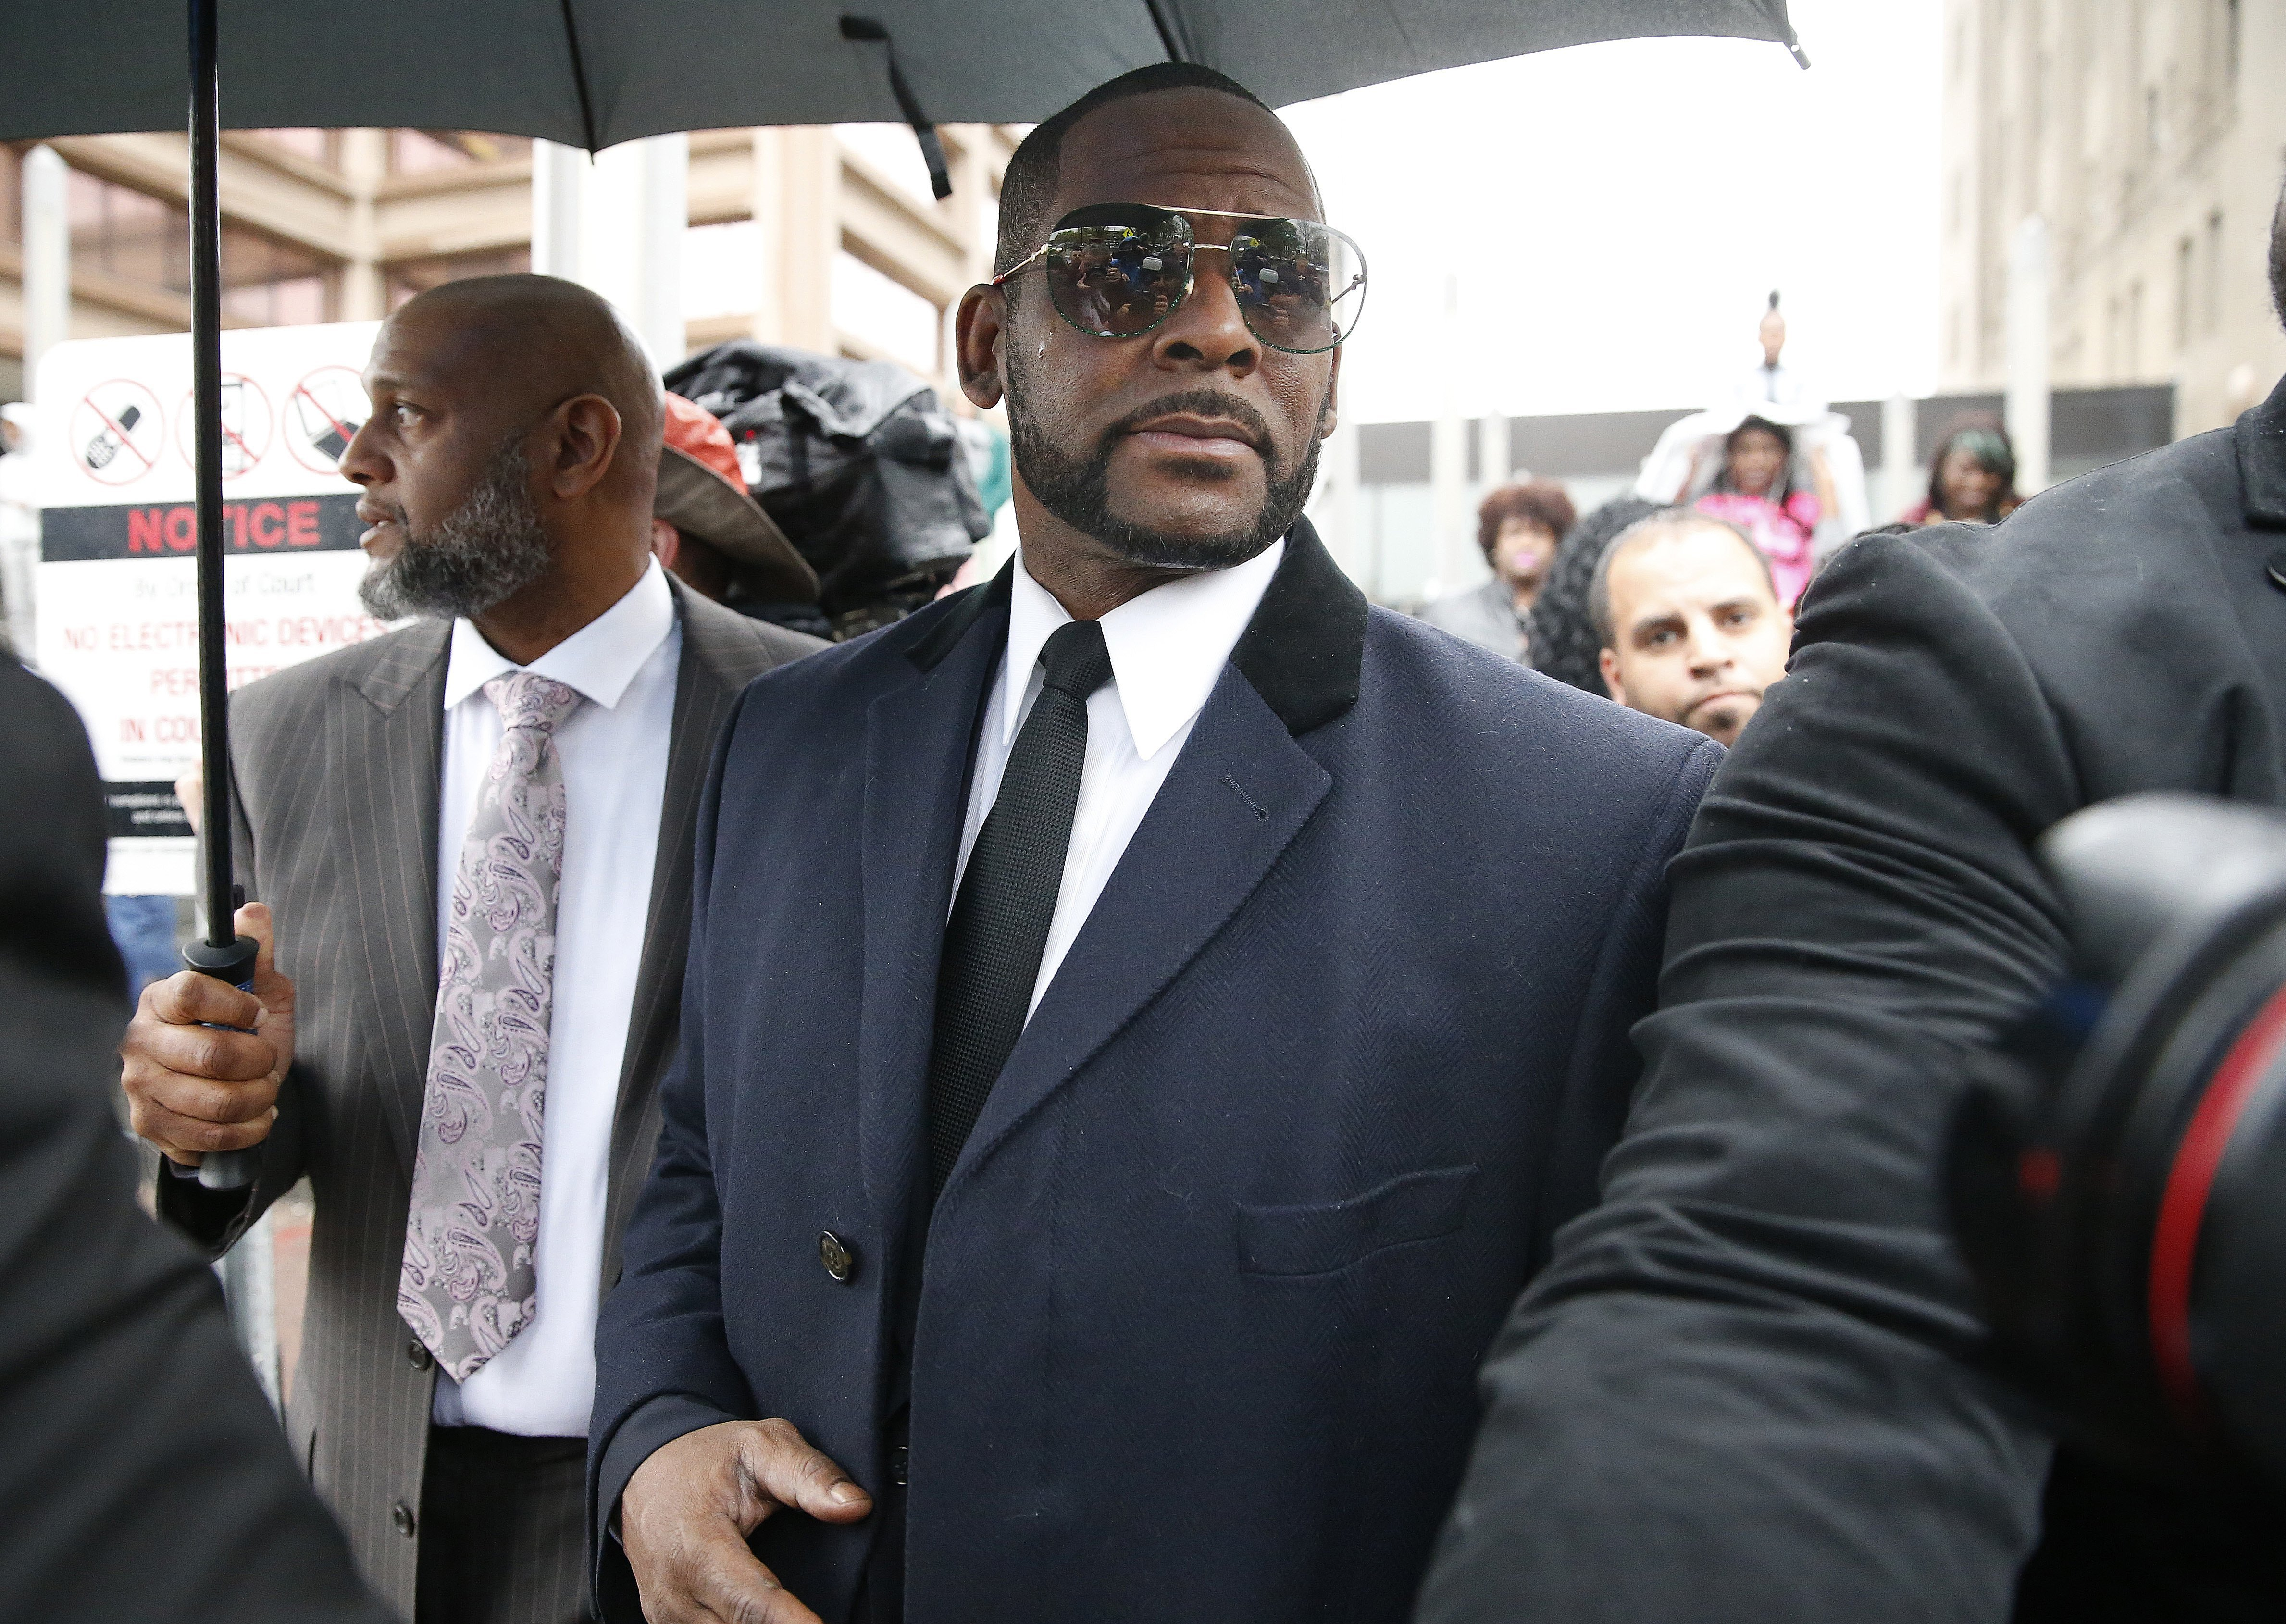 R. Kelly leaging a courthouse in Chicago after a status hearing for sexual abuse allegations in May 2019.